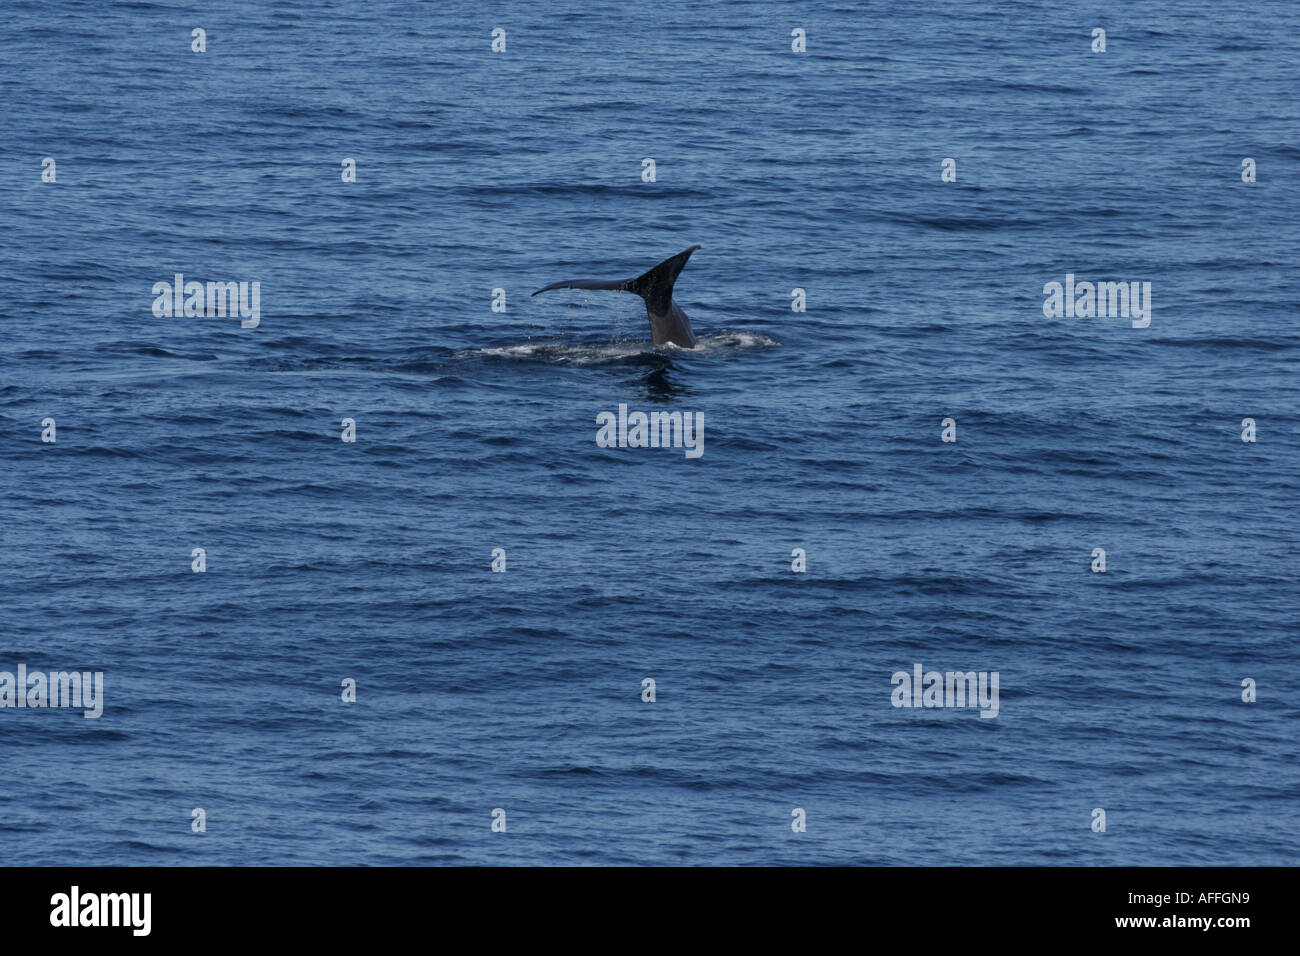 The spermwhale can dive to depths of more than a thousand meter searching for giant squids. - Stock Image